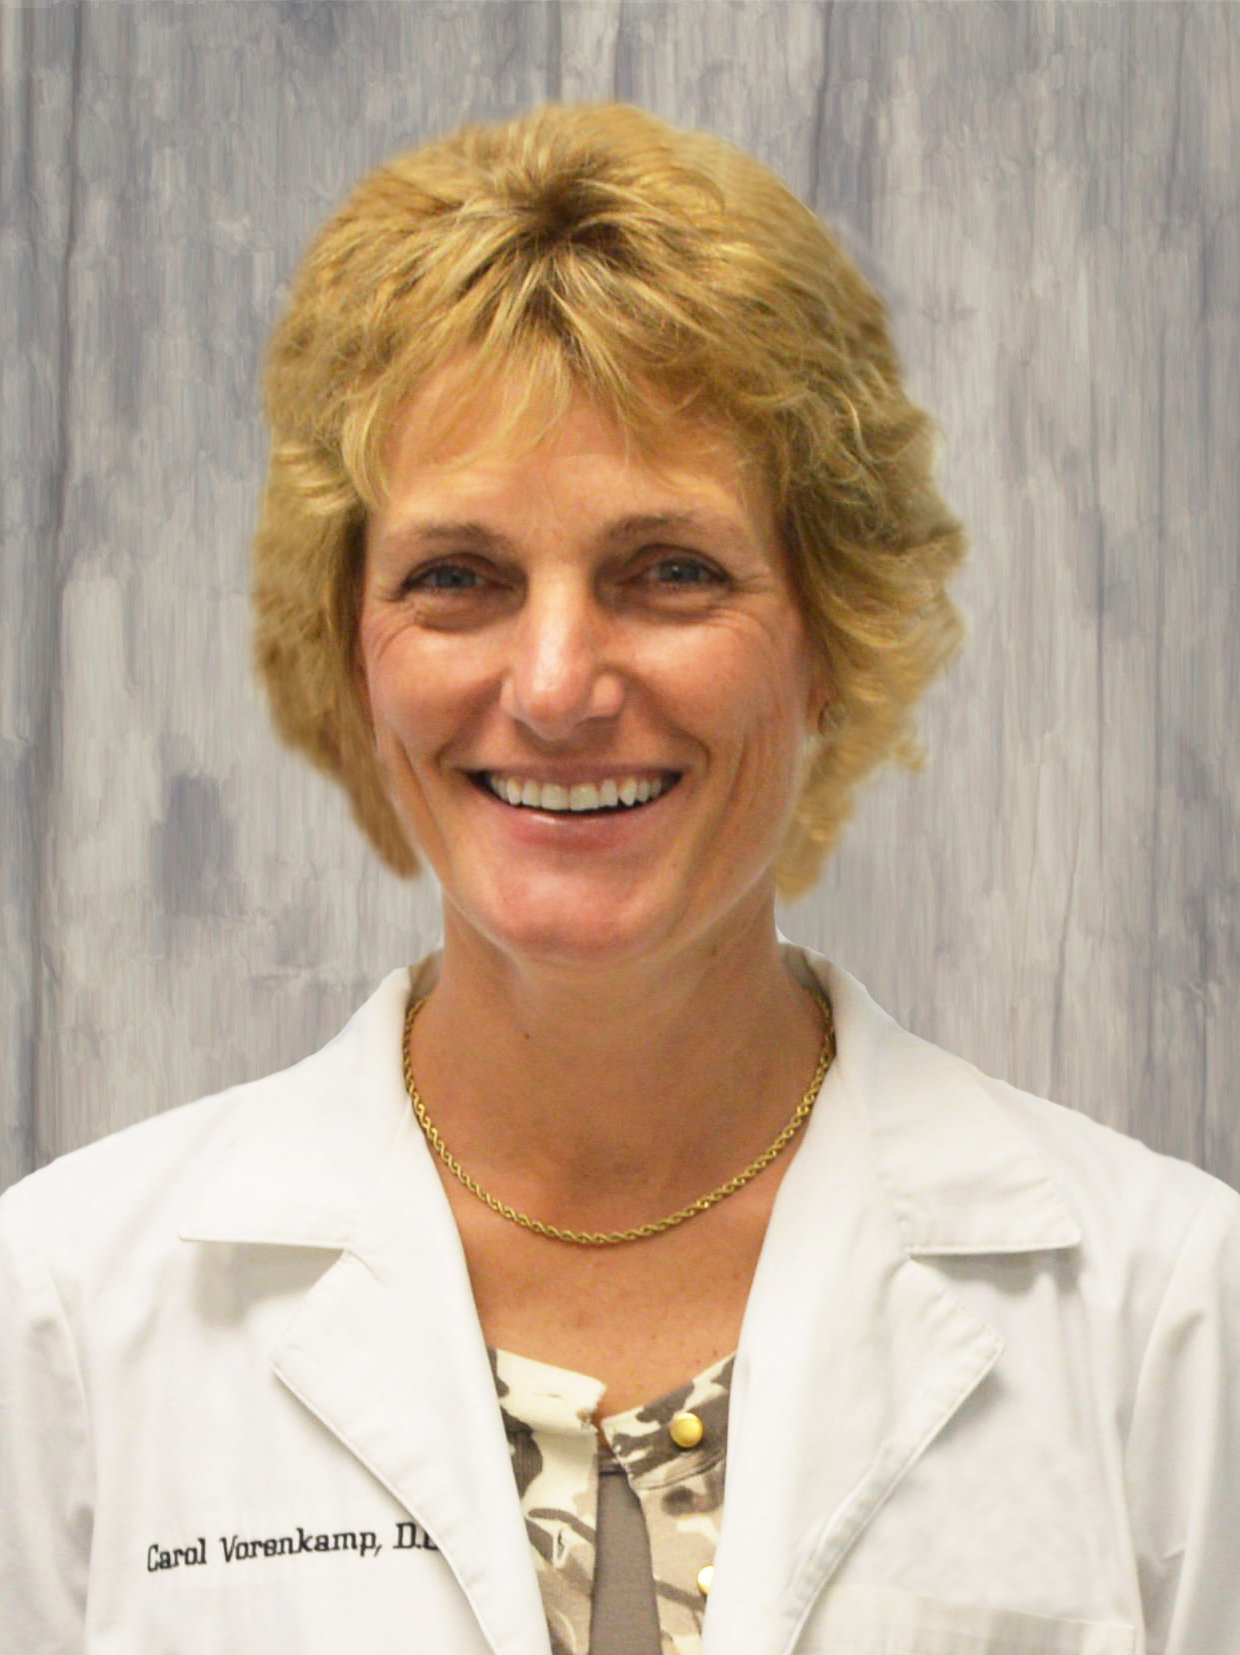 Carol Vorenkamp, DO - An Employed Provider of Memorial Healthcare